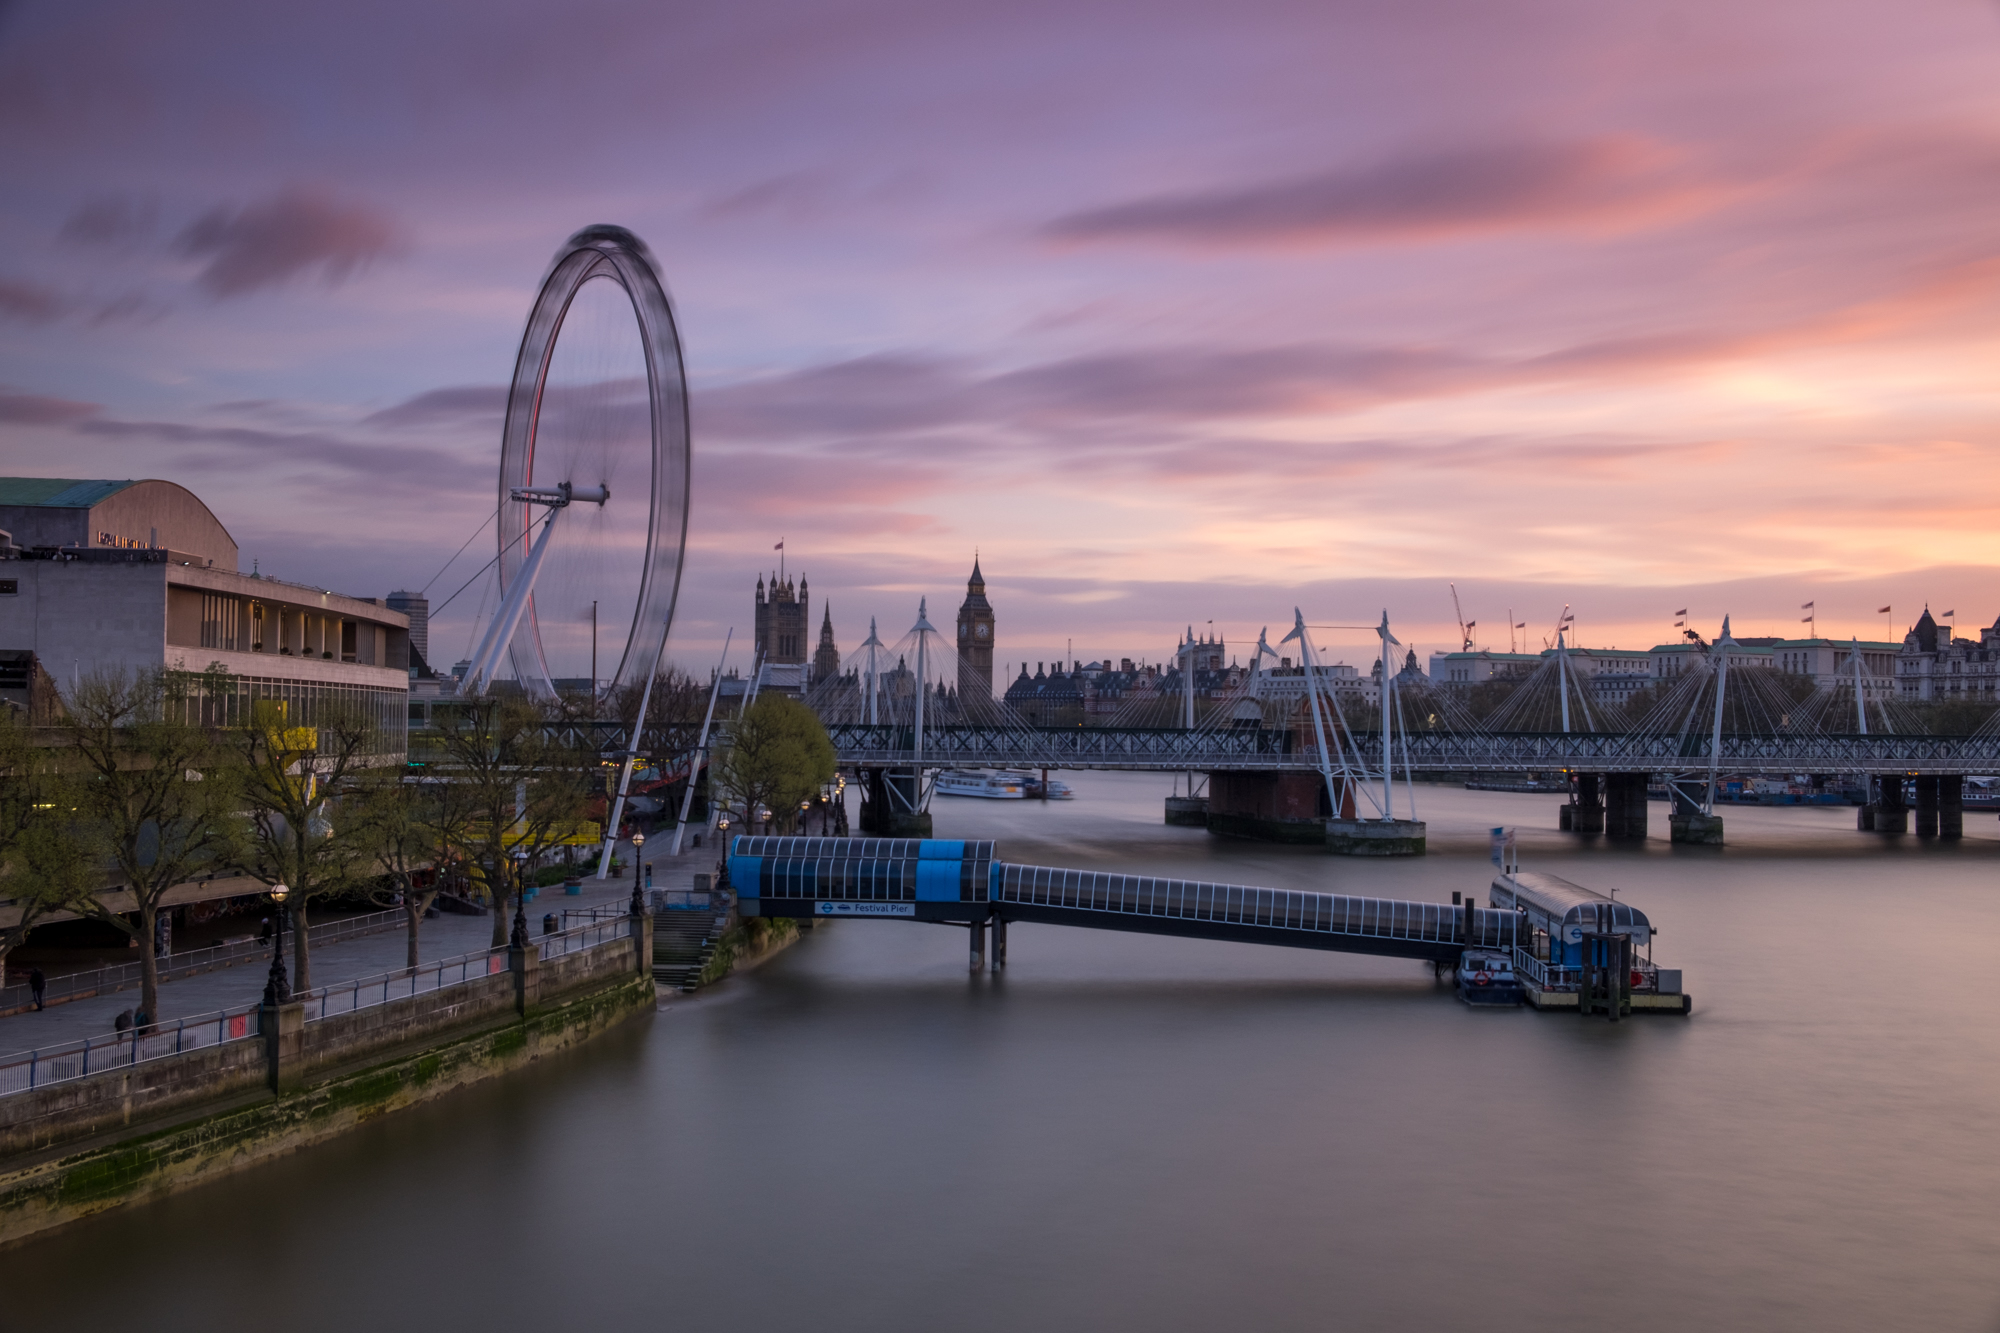 Photo of sunset at the South Bank with Levels and Vibrancy added by Trevor Sherwin